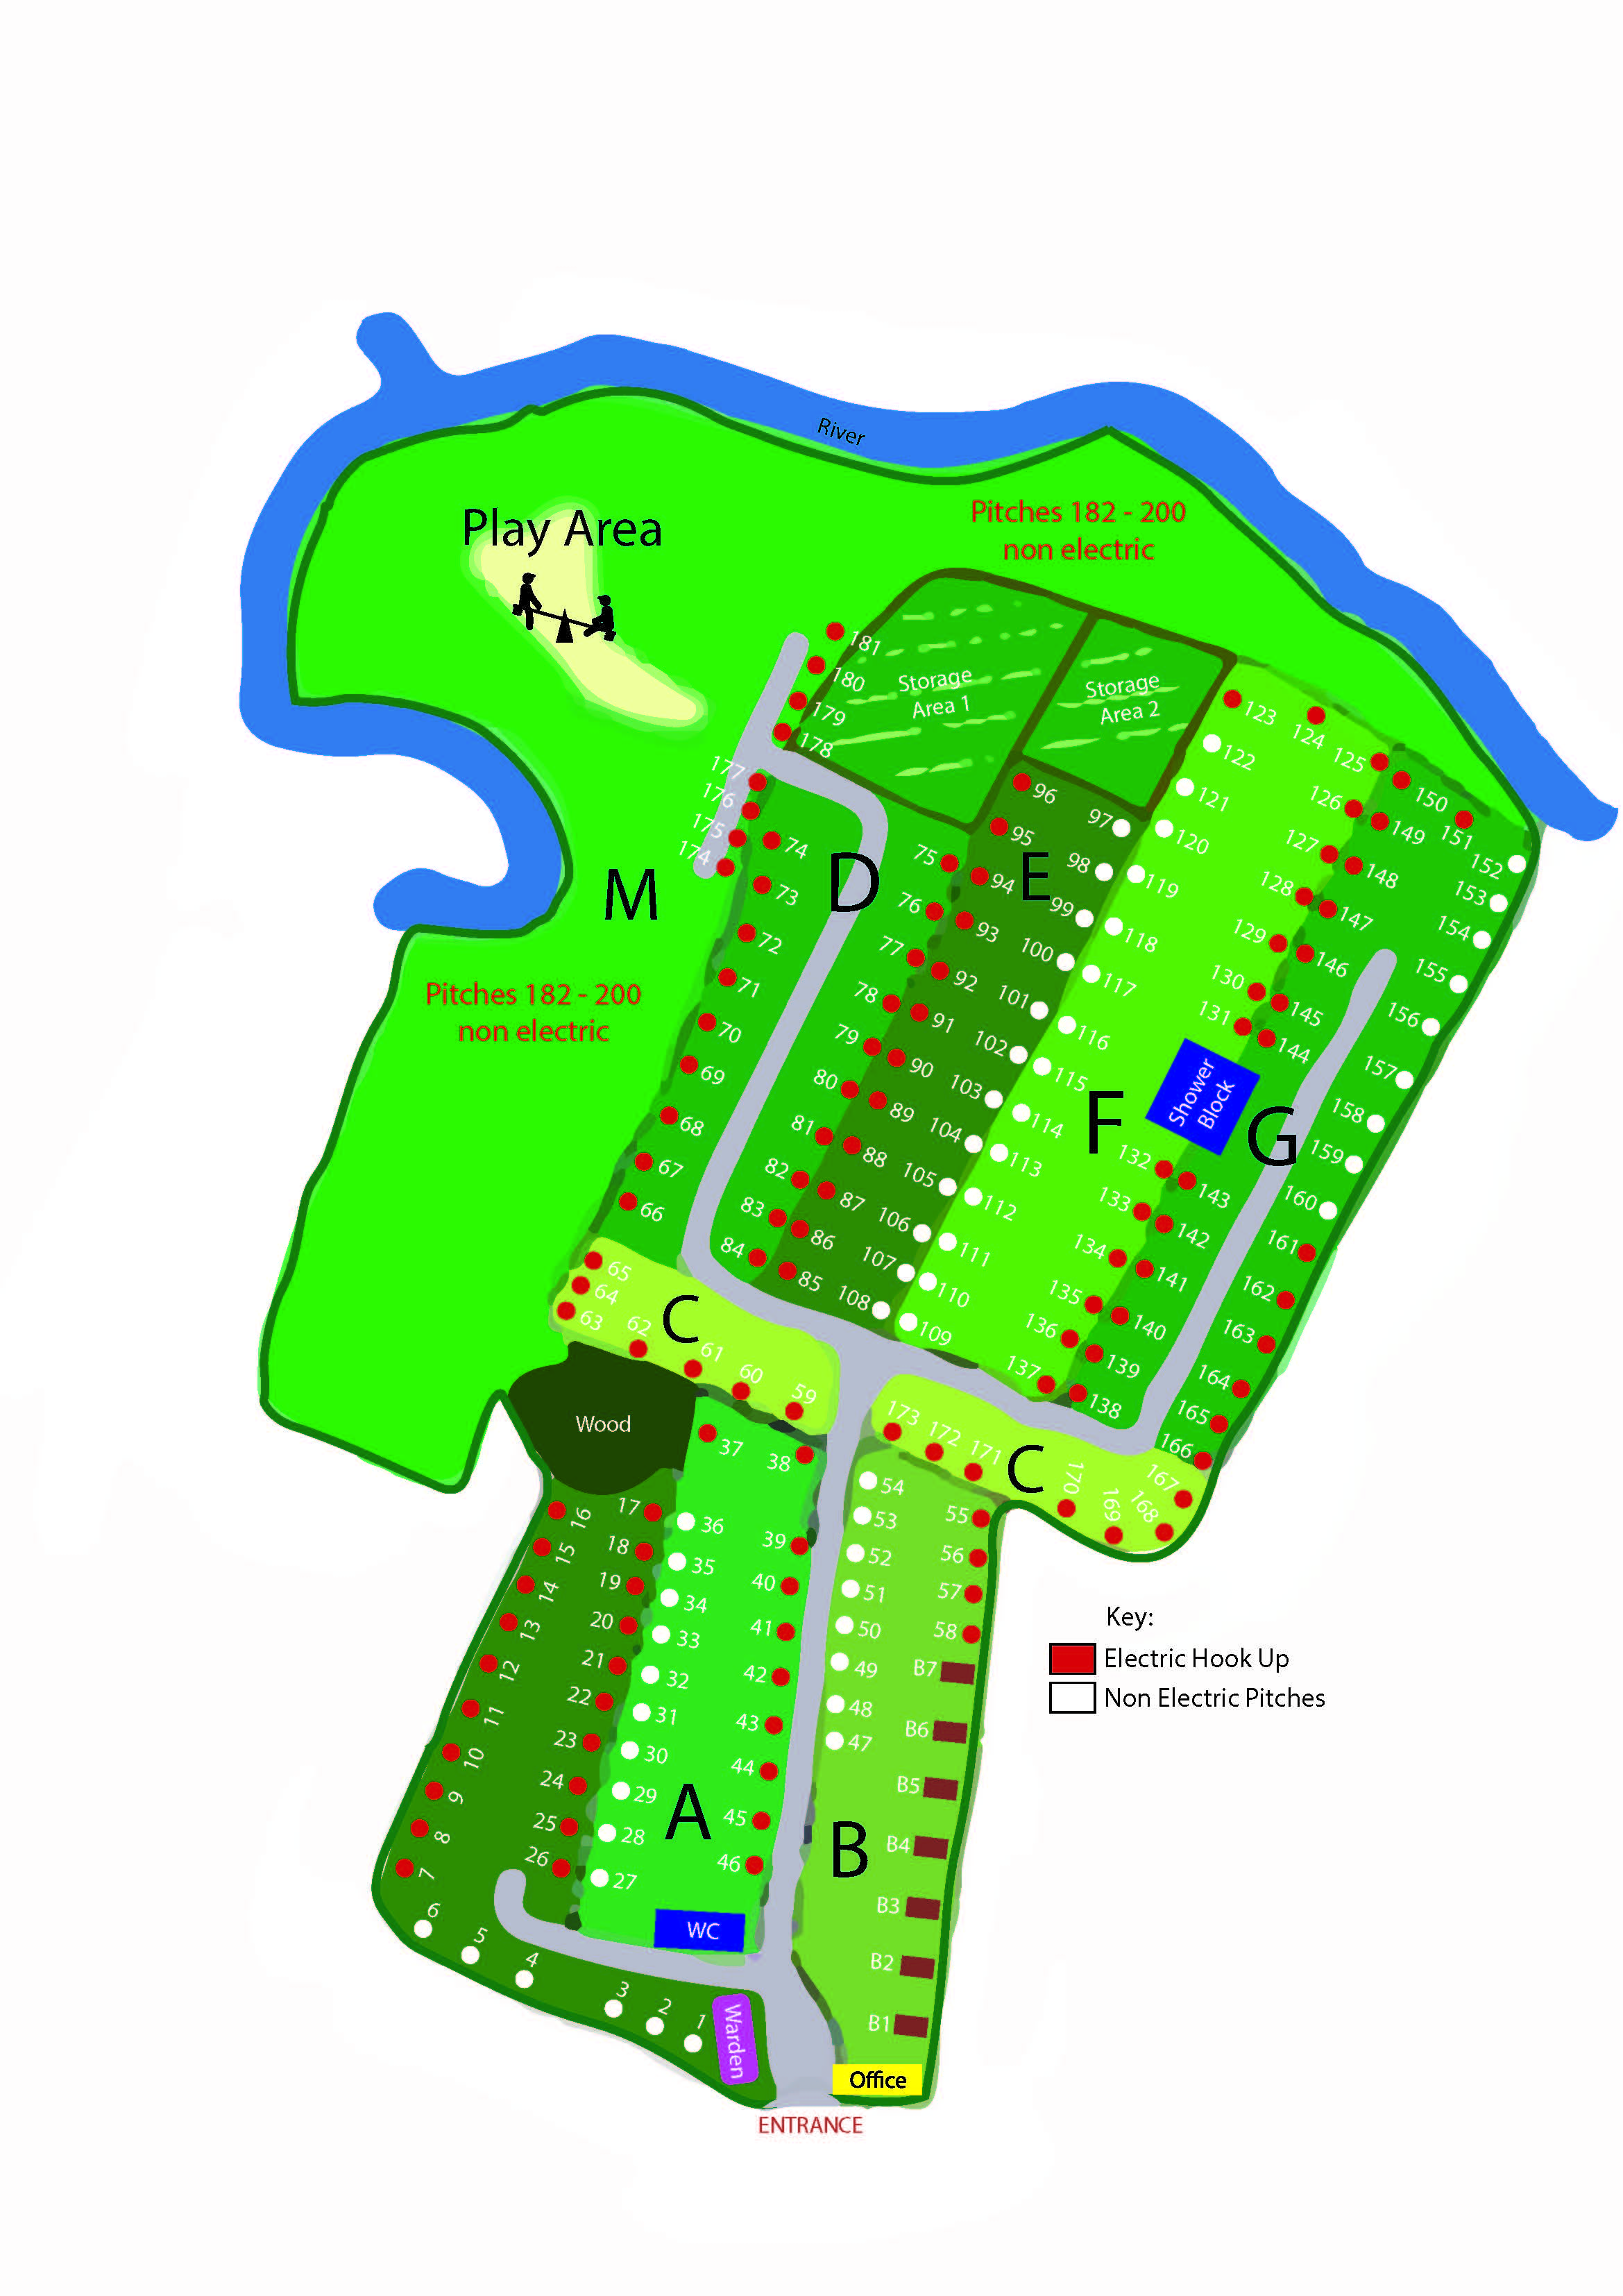 camp site plan and pitches Bournemouth